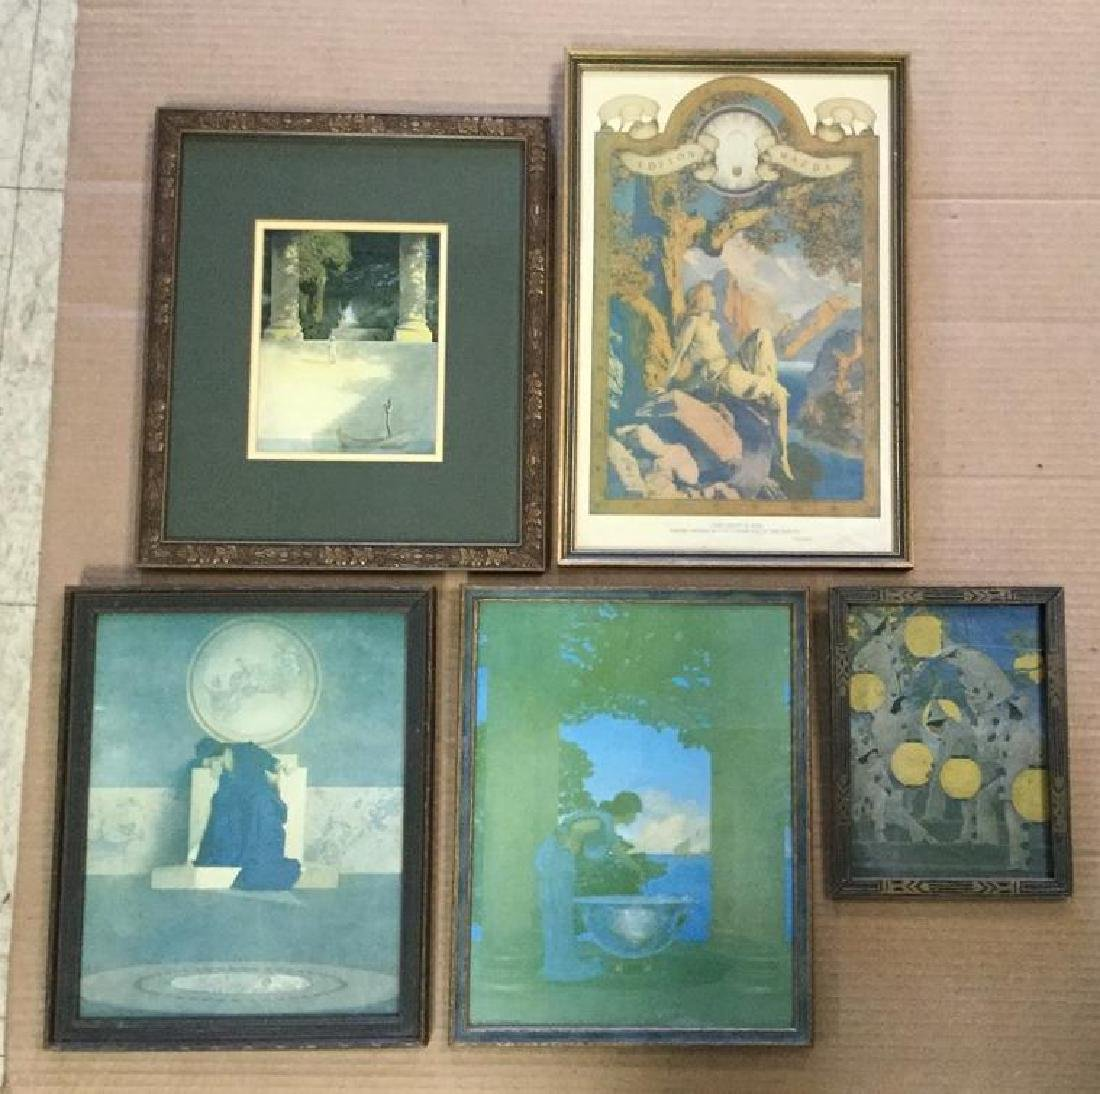 (5) MAXFIELD PARRISH PRINTS, OF THE PERIOD, IN PERIOD